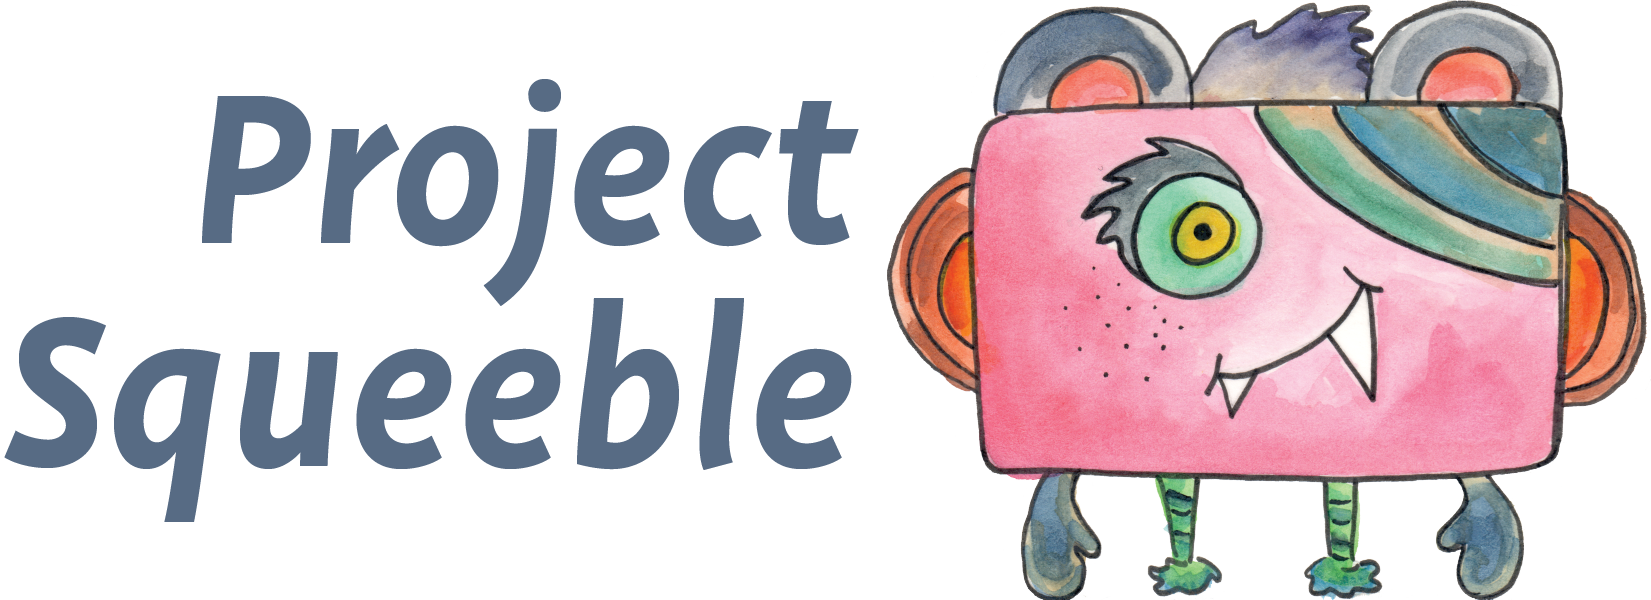 Project Squeeble Logo.png